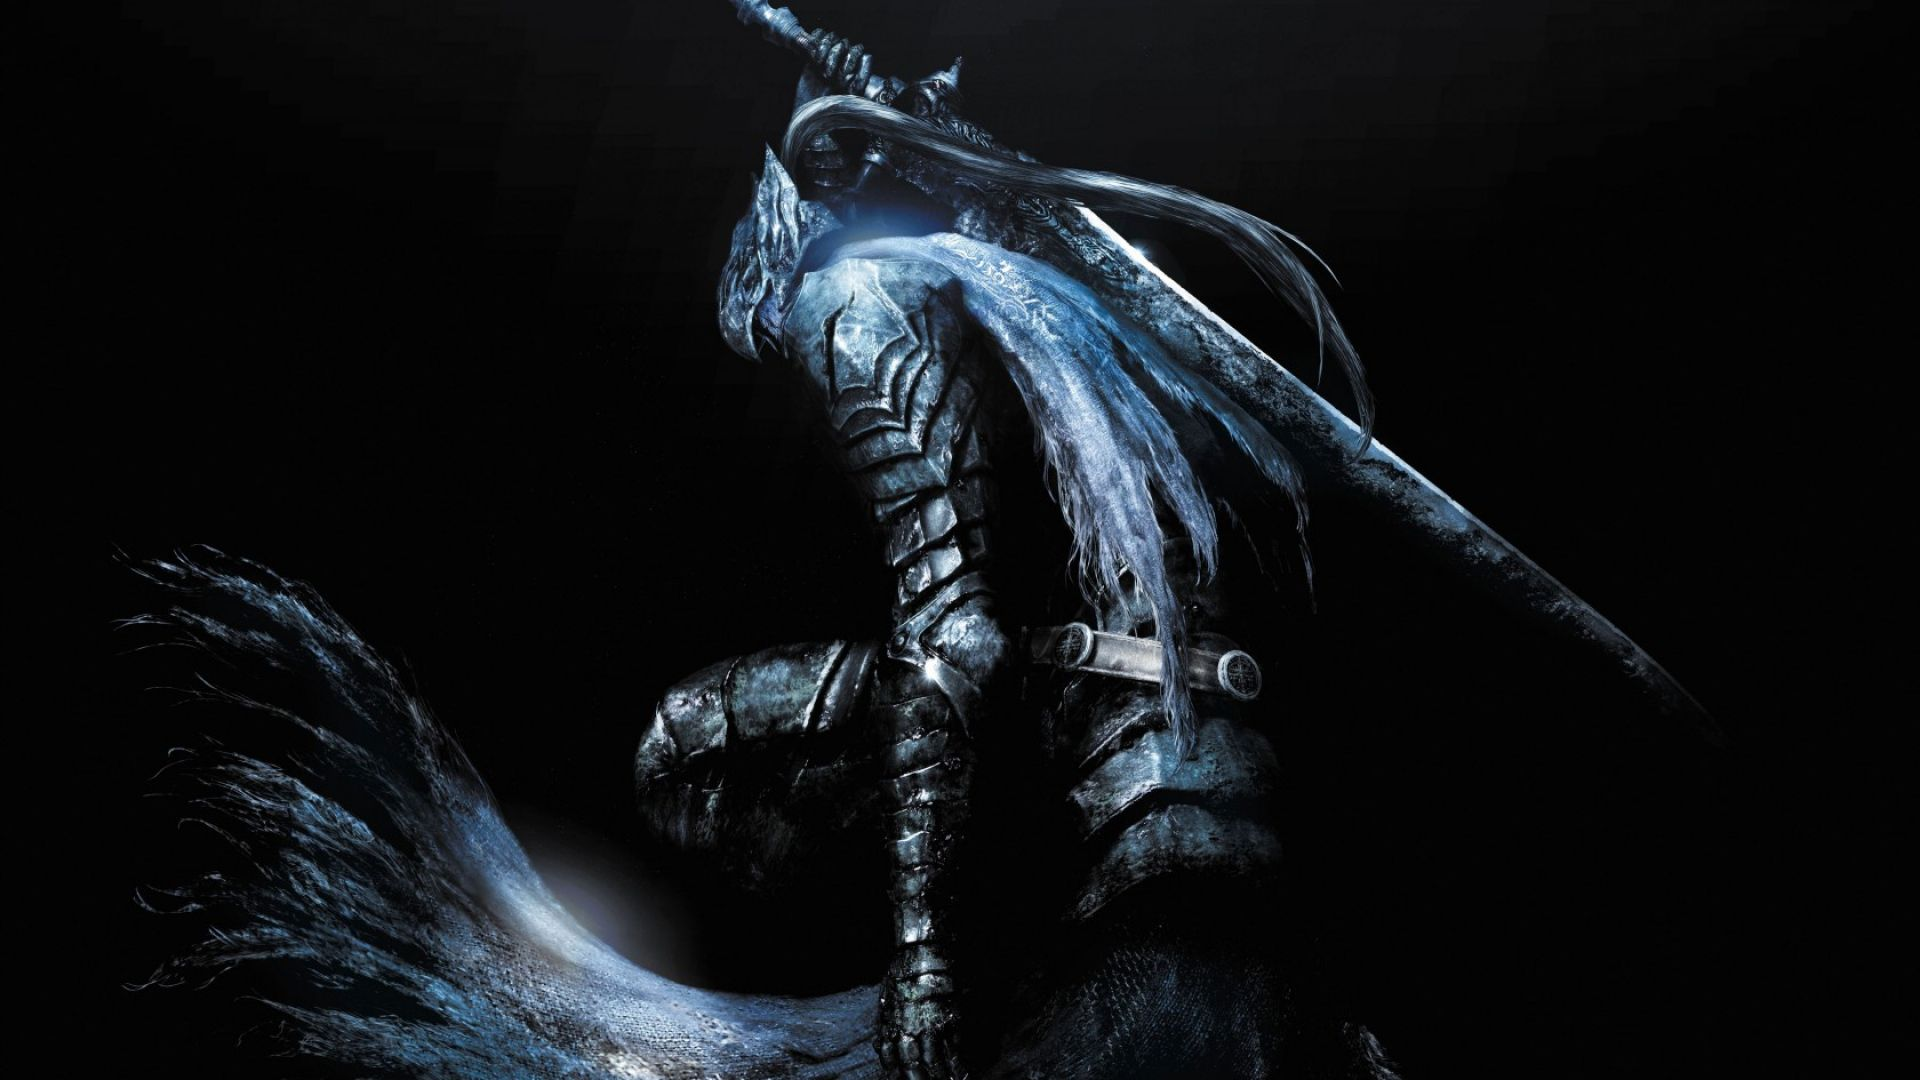 Dark Souls 3 1920x1080 Need IPhone 6S Plus Wallpaper Background For IPhone6SPlus Follow 3Wallpapers Backgrounds Must To Have